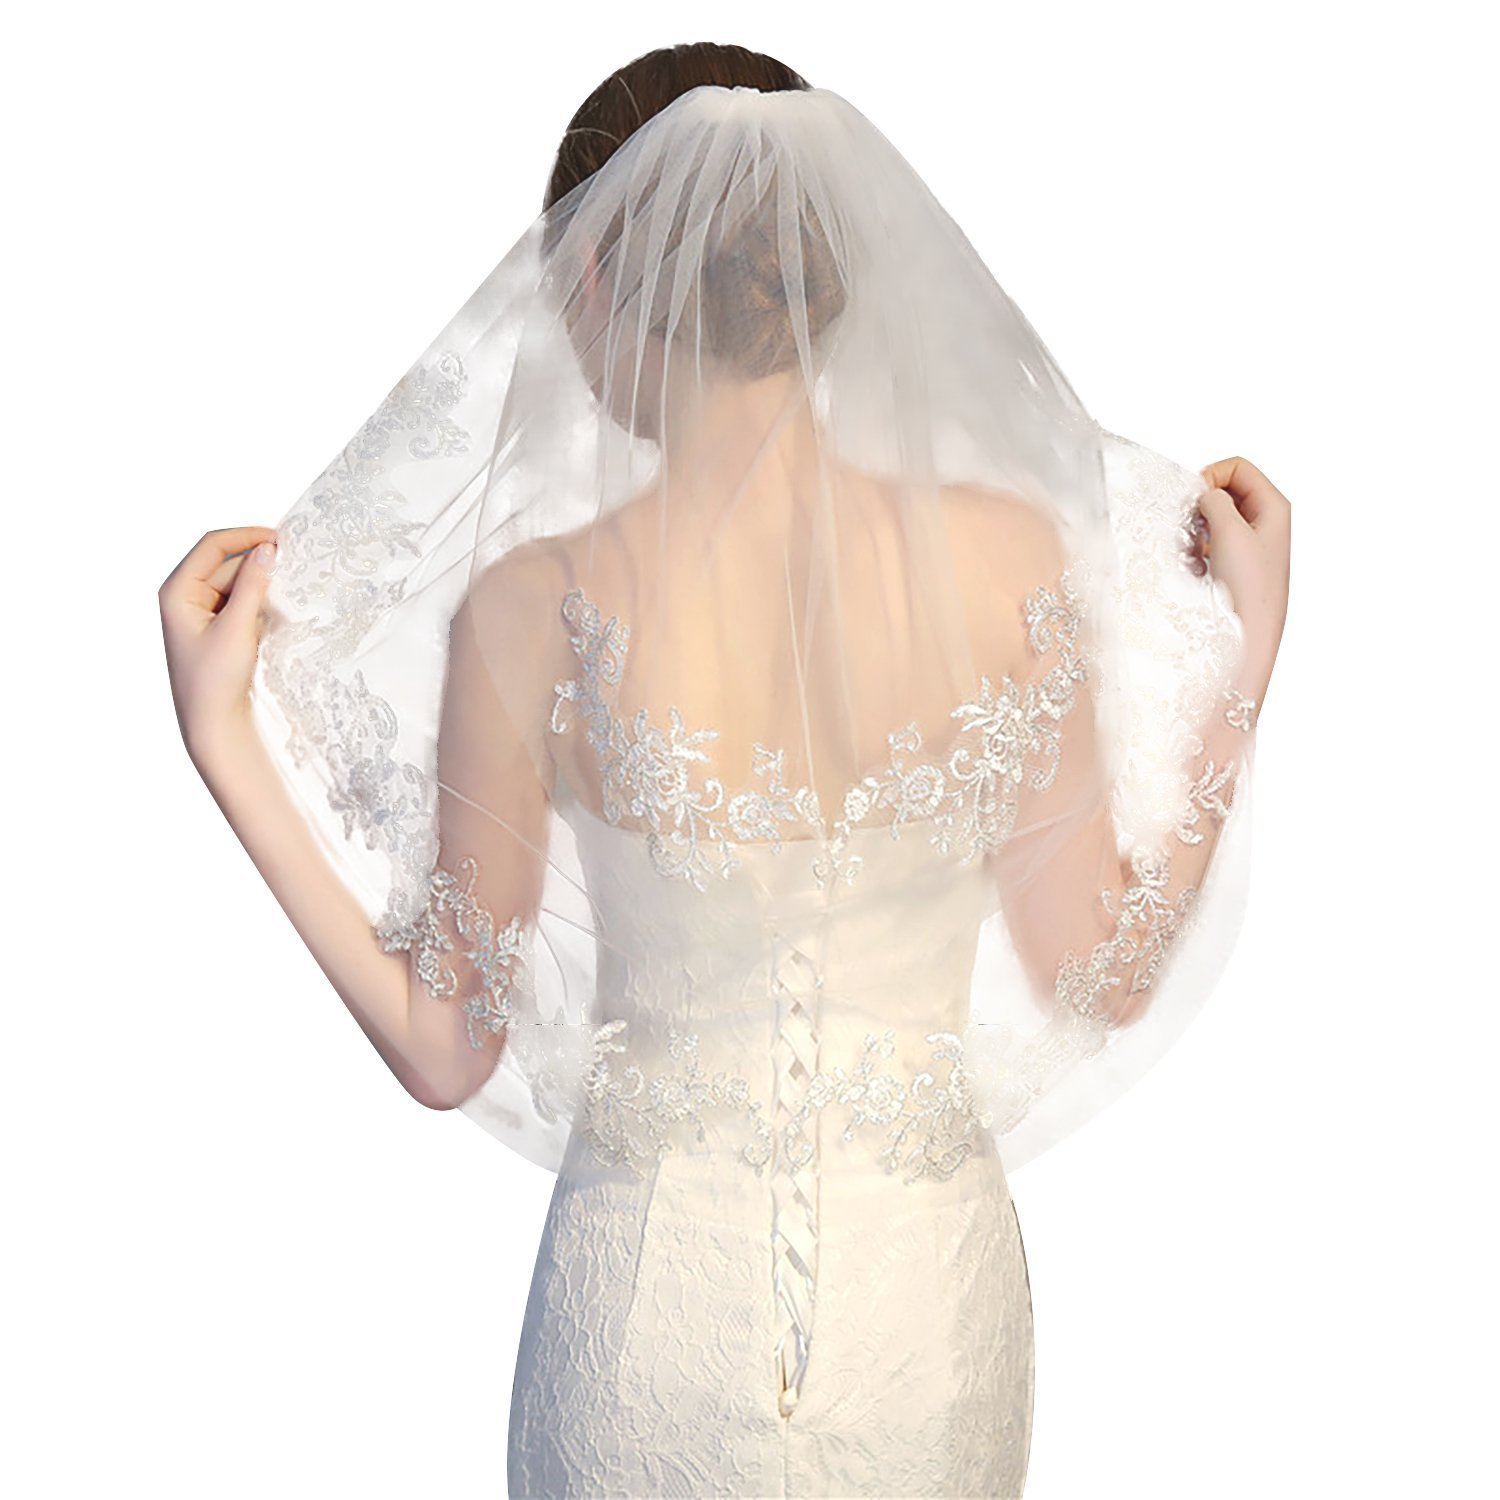 2 Tier Wedding Bridal Veil with Comb Ivory Lace Edge Fingertip Length Short (Ivory)